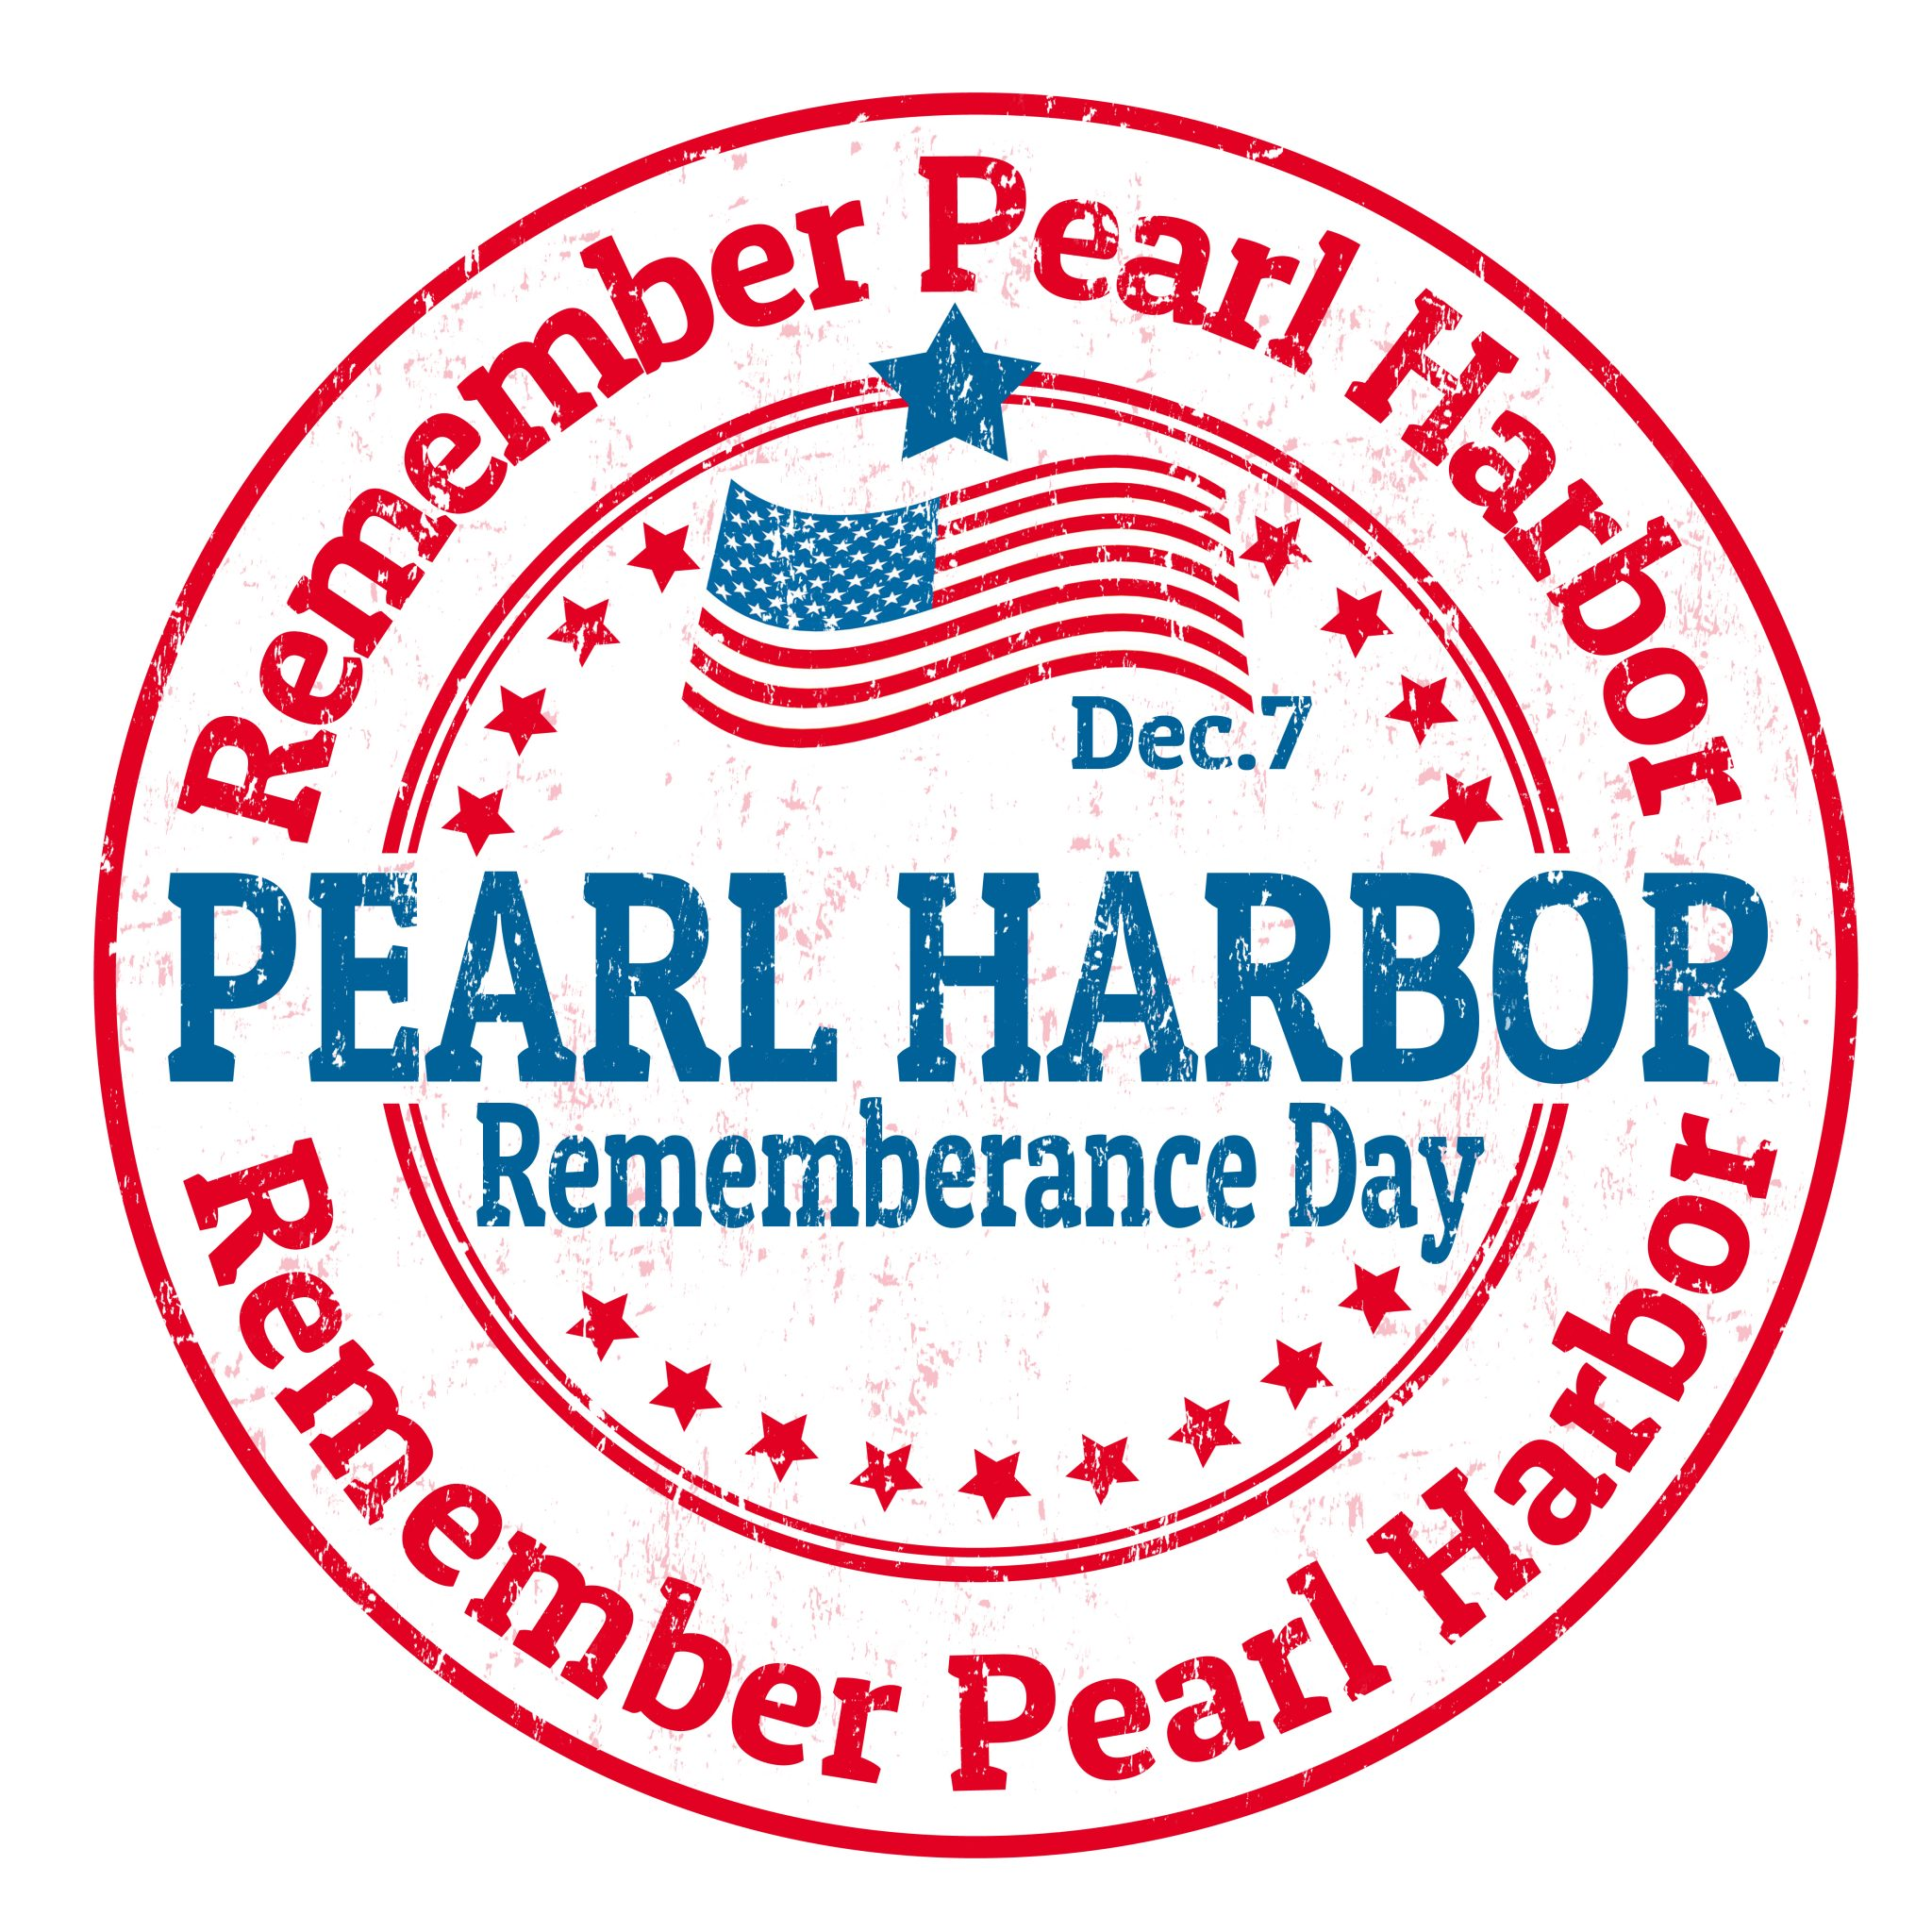 Pearl Harbor Remembrance Day Clipart >> Pearl Harbor Day Pictures, Images, Graphics for Facebook ...